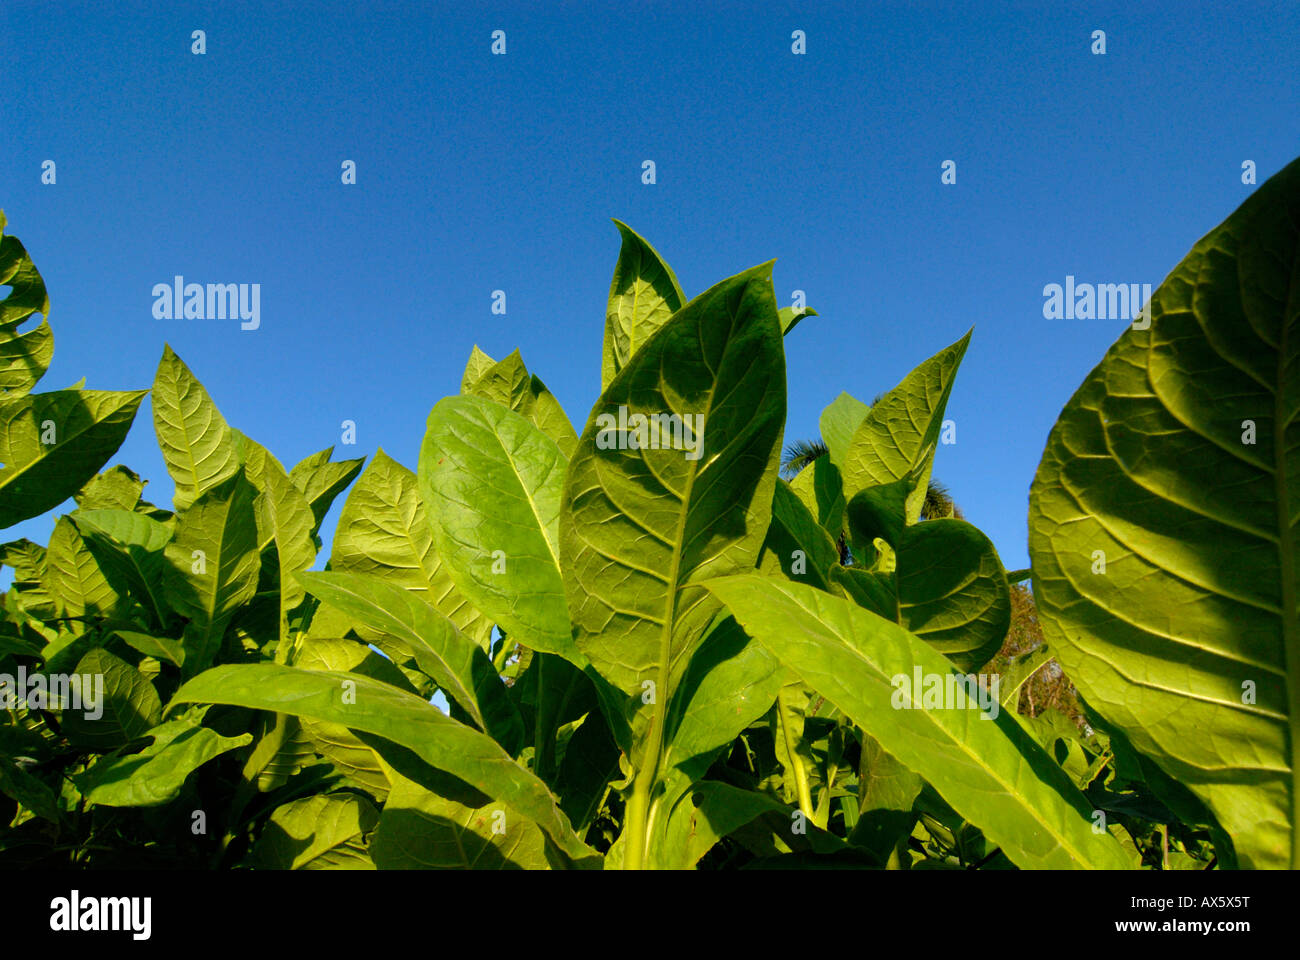 Tobacco leaves, tobacco field in Pinar del Rio, Cuba, Caribbean Stock Photo